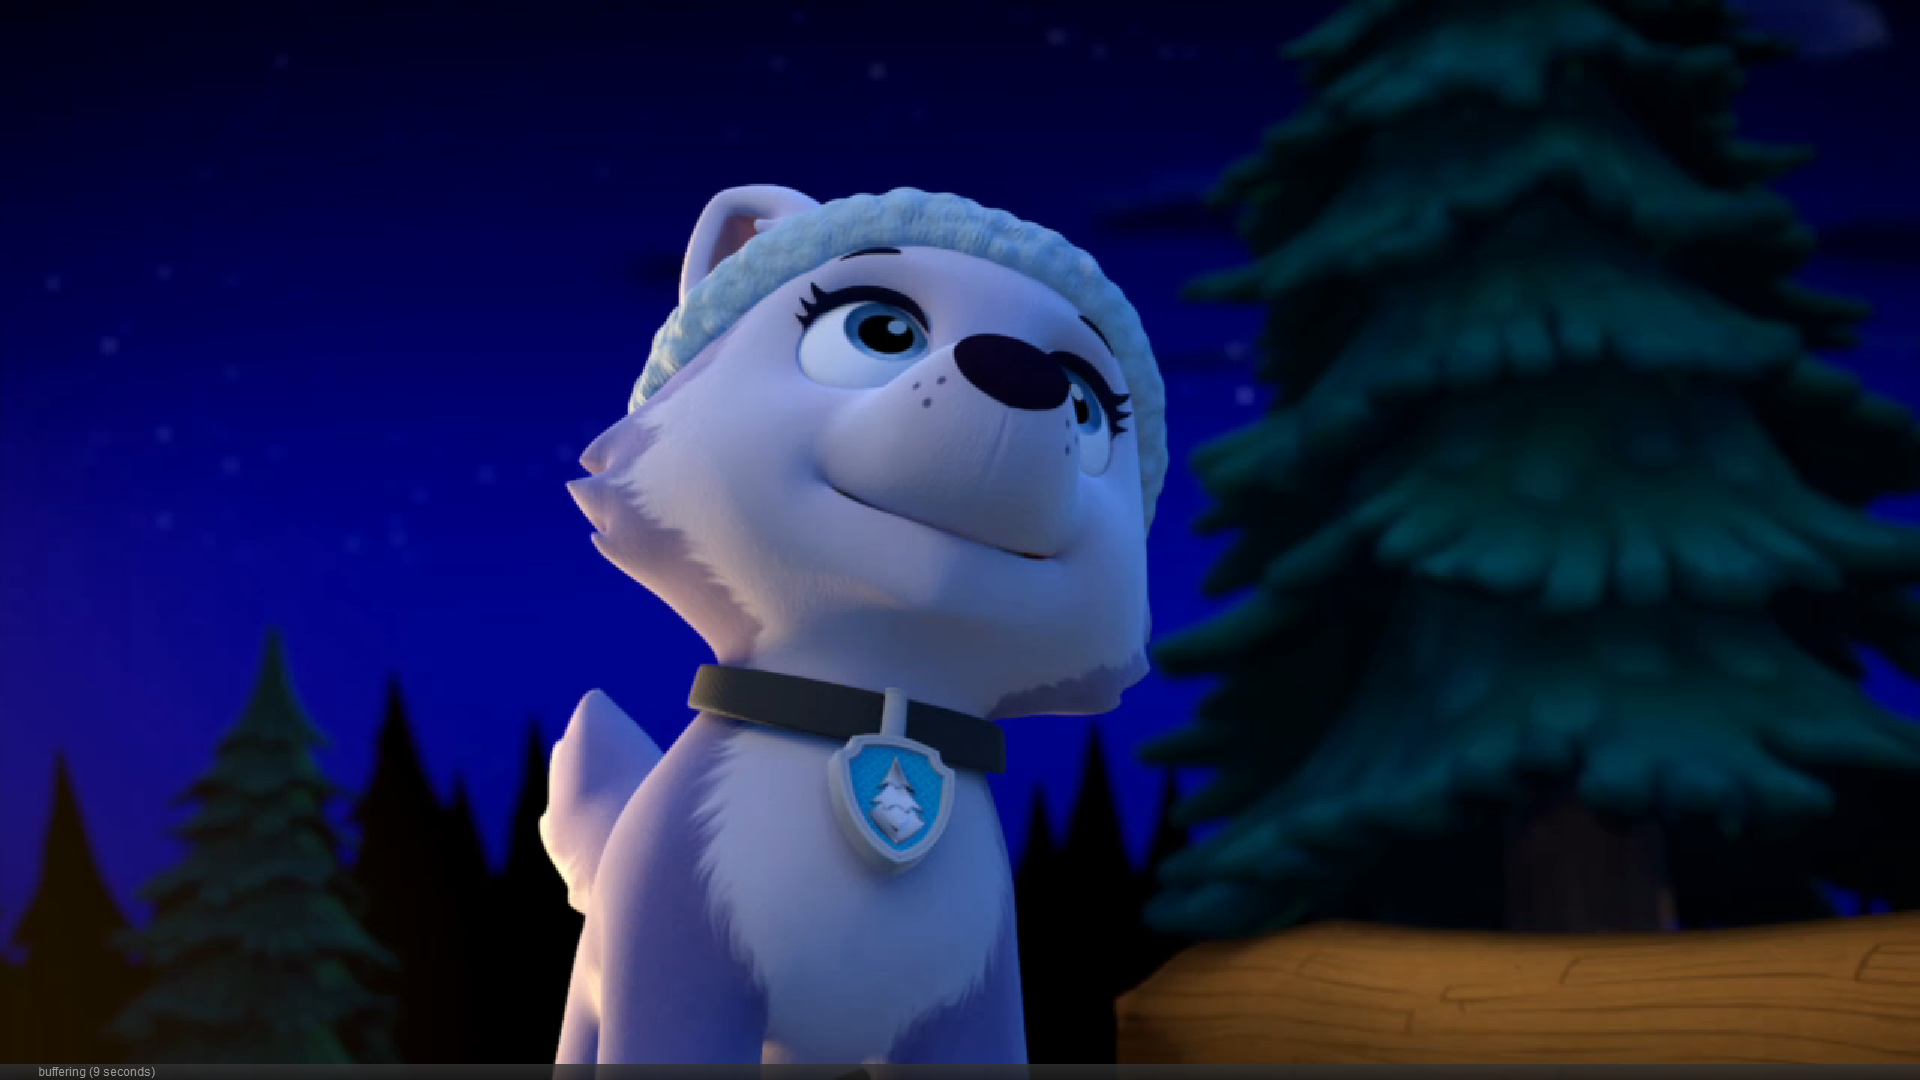 Coloring Pages Of Paw Patrol : Everest paw patrol wiki fandom powered by wikia